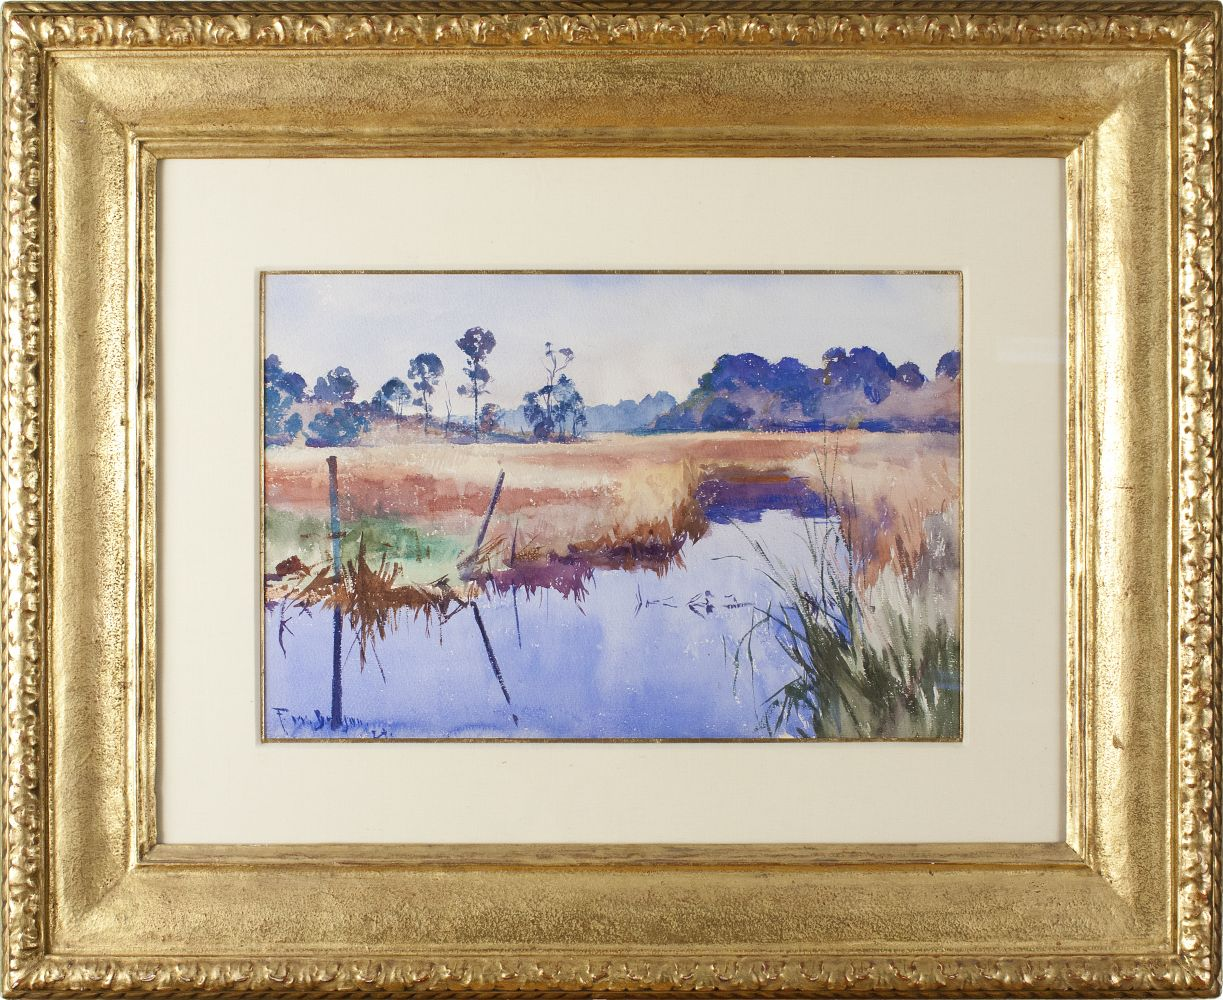 Colorful watercolor by Frank Benson of a river in Alabama (framed).